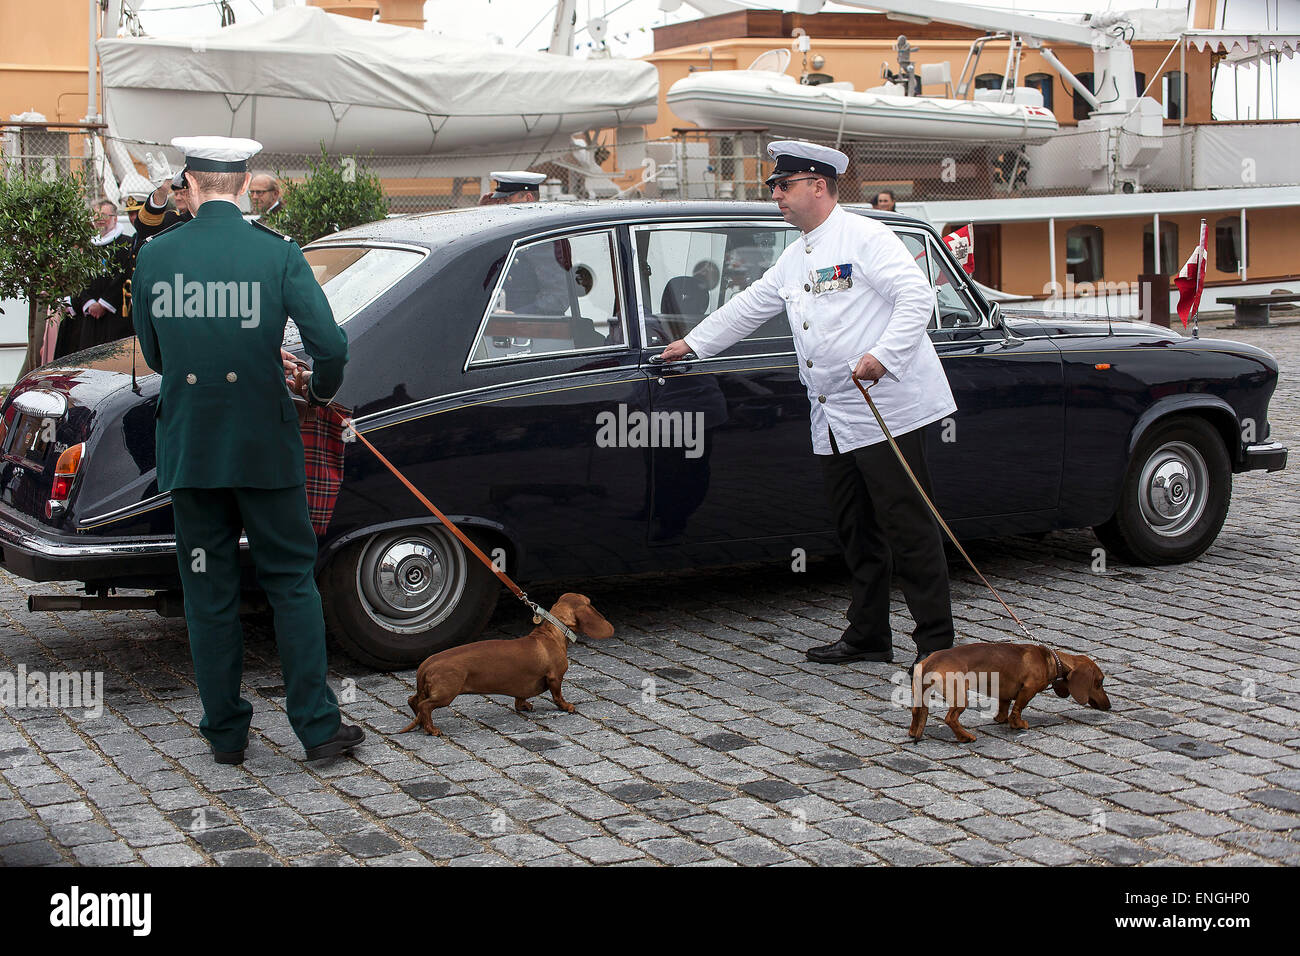 Helsingore, Denmark. 5th May, 2015. The royal Dachshund's followed Queen Margrethe and Prince Consort Henrik onboard - Stock Image